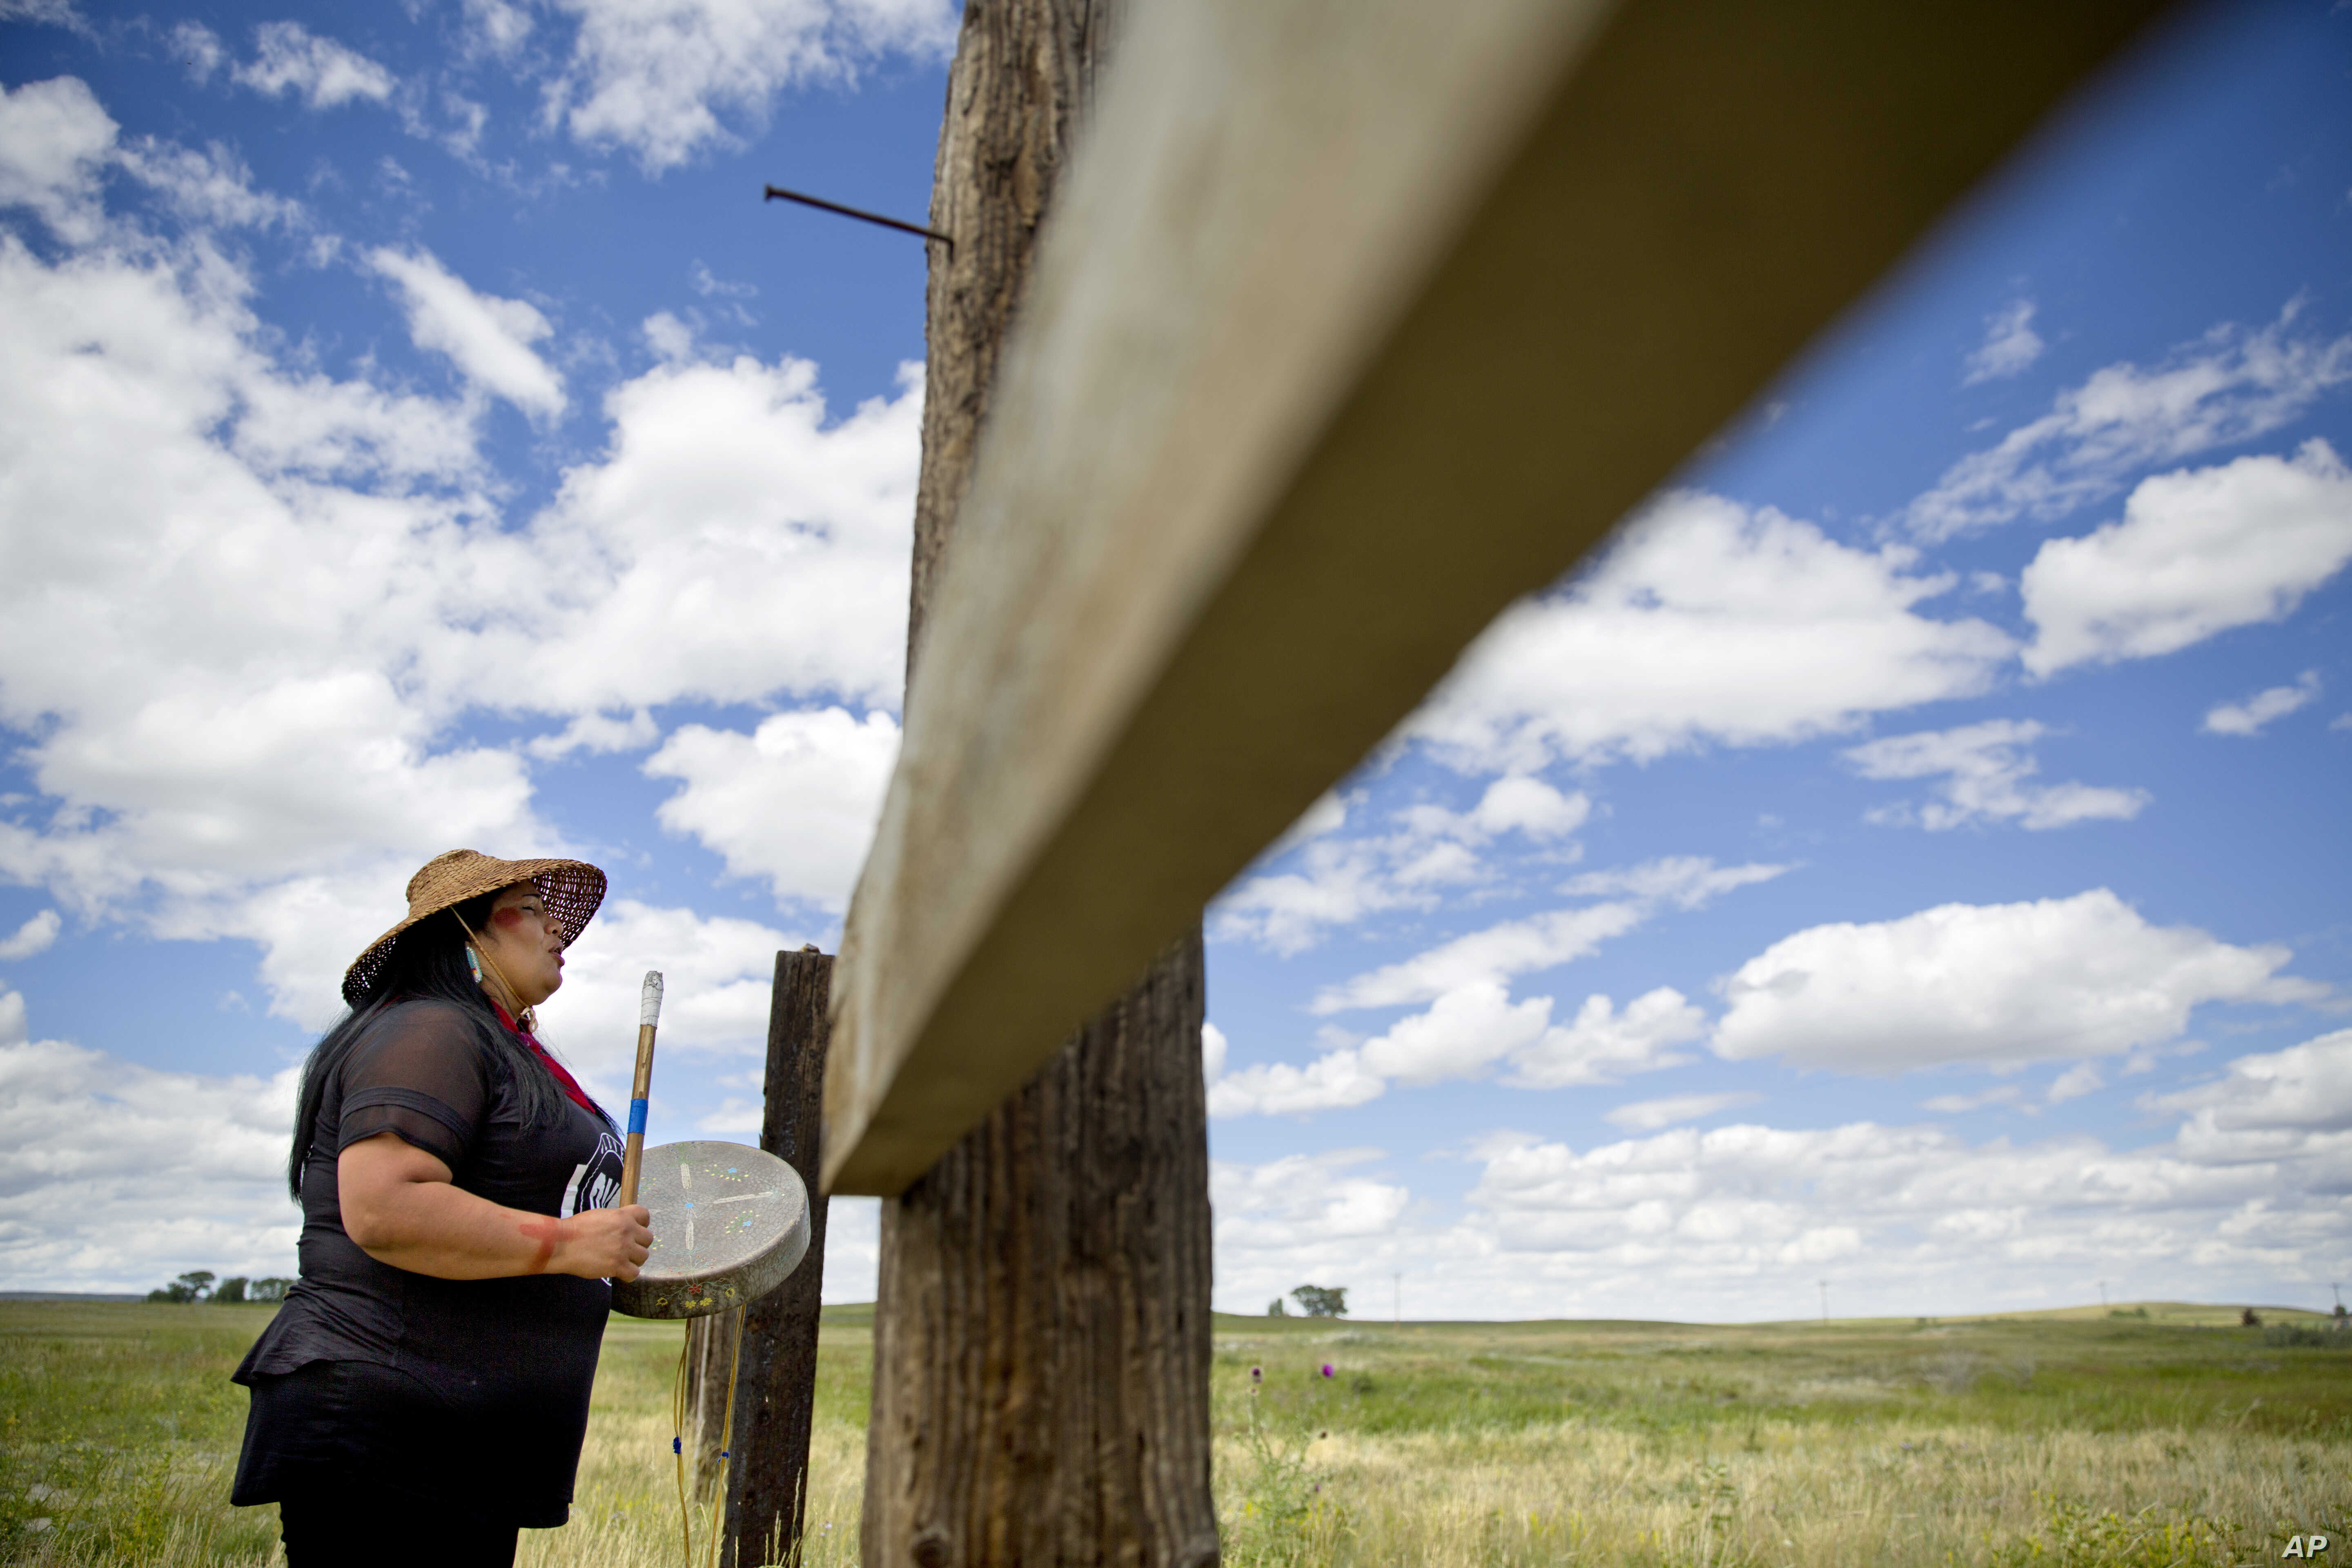 FILE - Roxanne White, whose aunt was murdered in 1996, sings and drums a women's warrior and honor song created for missing and murdered indigenous women, before joining a search in Valier, Mont., for Ashley HeavyRunner Loring, who disappeared last y...